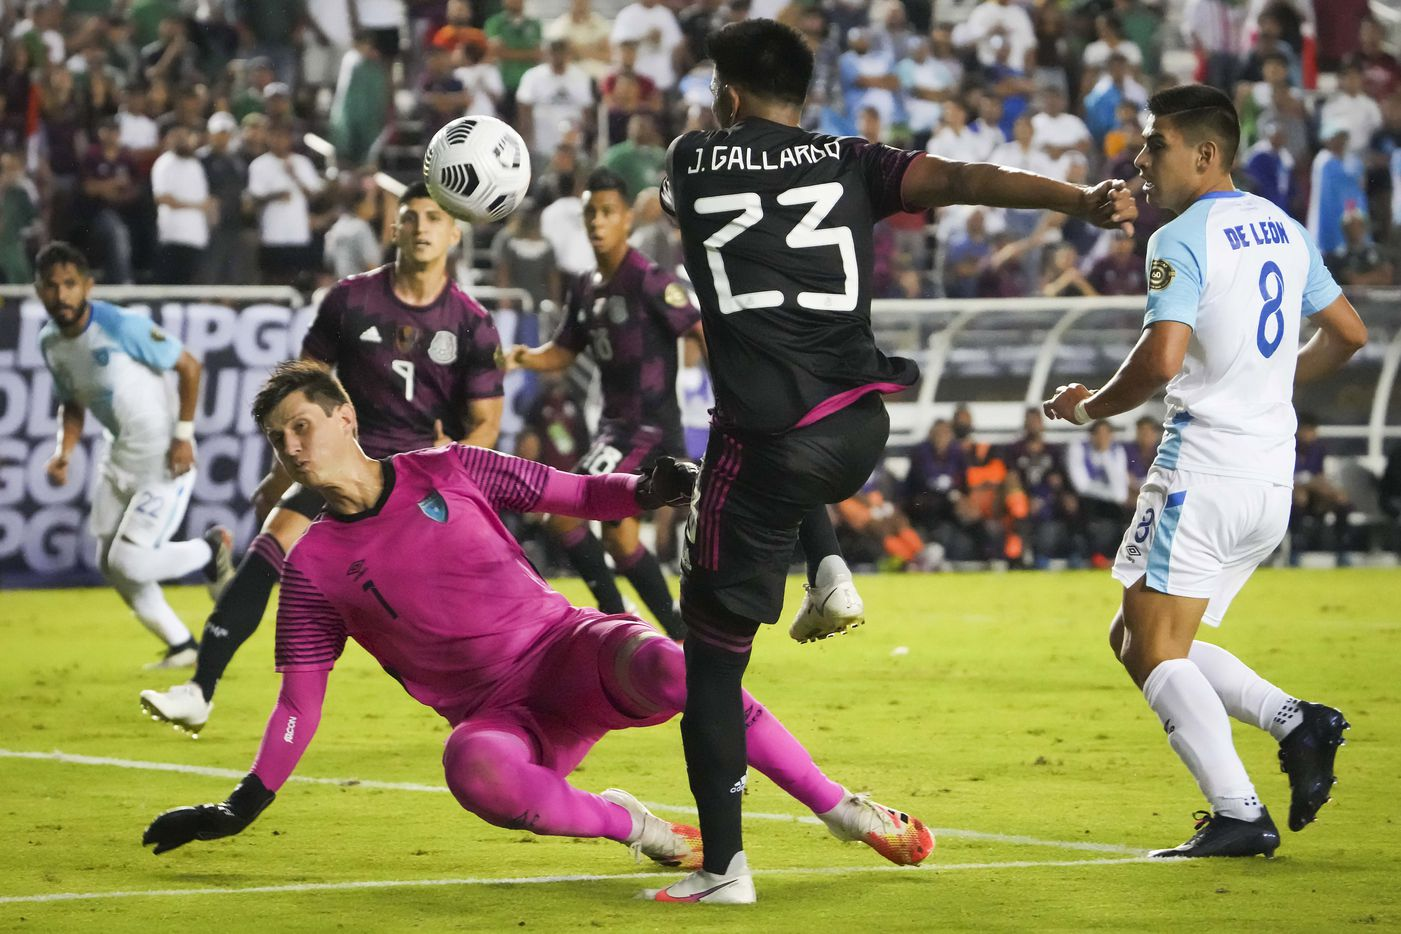 Guatemala goalkeeper Nicholas Hagen (1) makes a save against Mexico midfielder Jesús Gallardo (23) during the second half of a CONCACAF Gold Cup Group A soccer match at the Cotton Bowl on Wednesday, July 14, 2021, in Dallas.